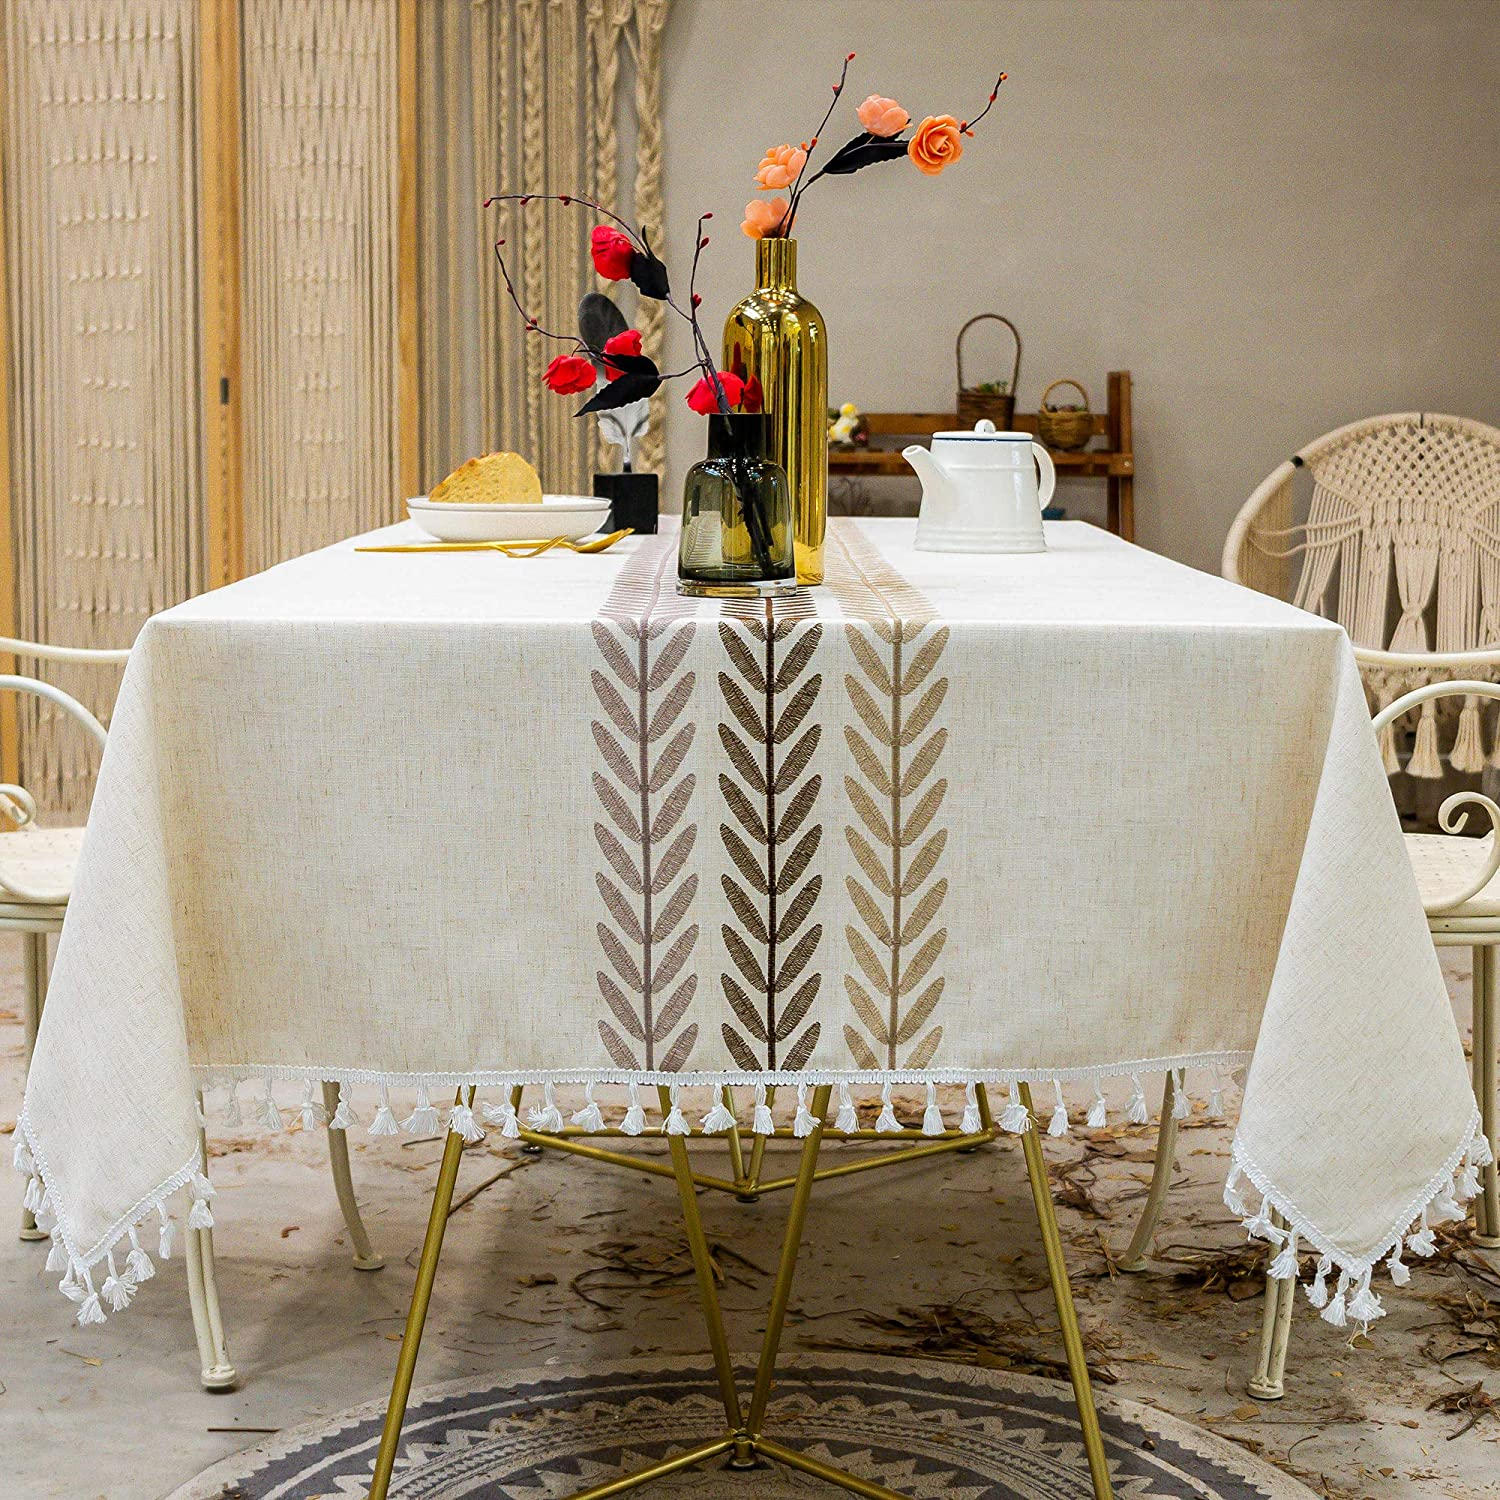 Oubonun Tablecloth for New Shipping Free Shipping Dining Table Tab Rustic Max 85% OFF Kitchen Farmhouse